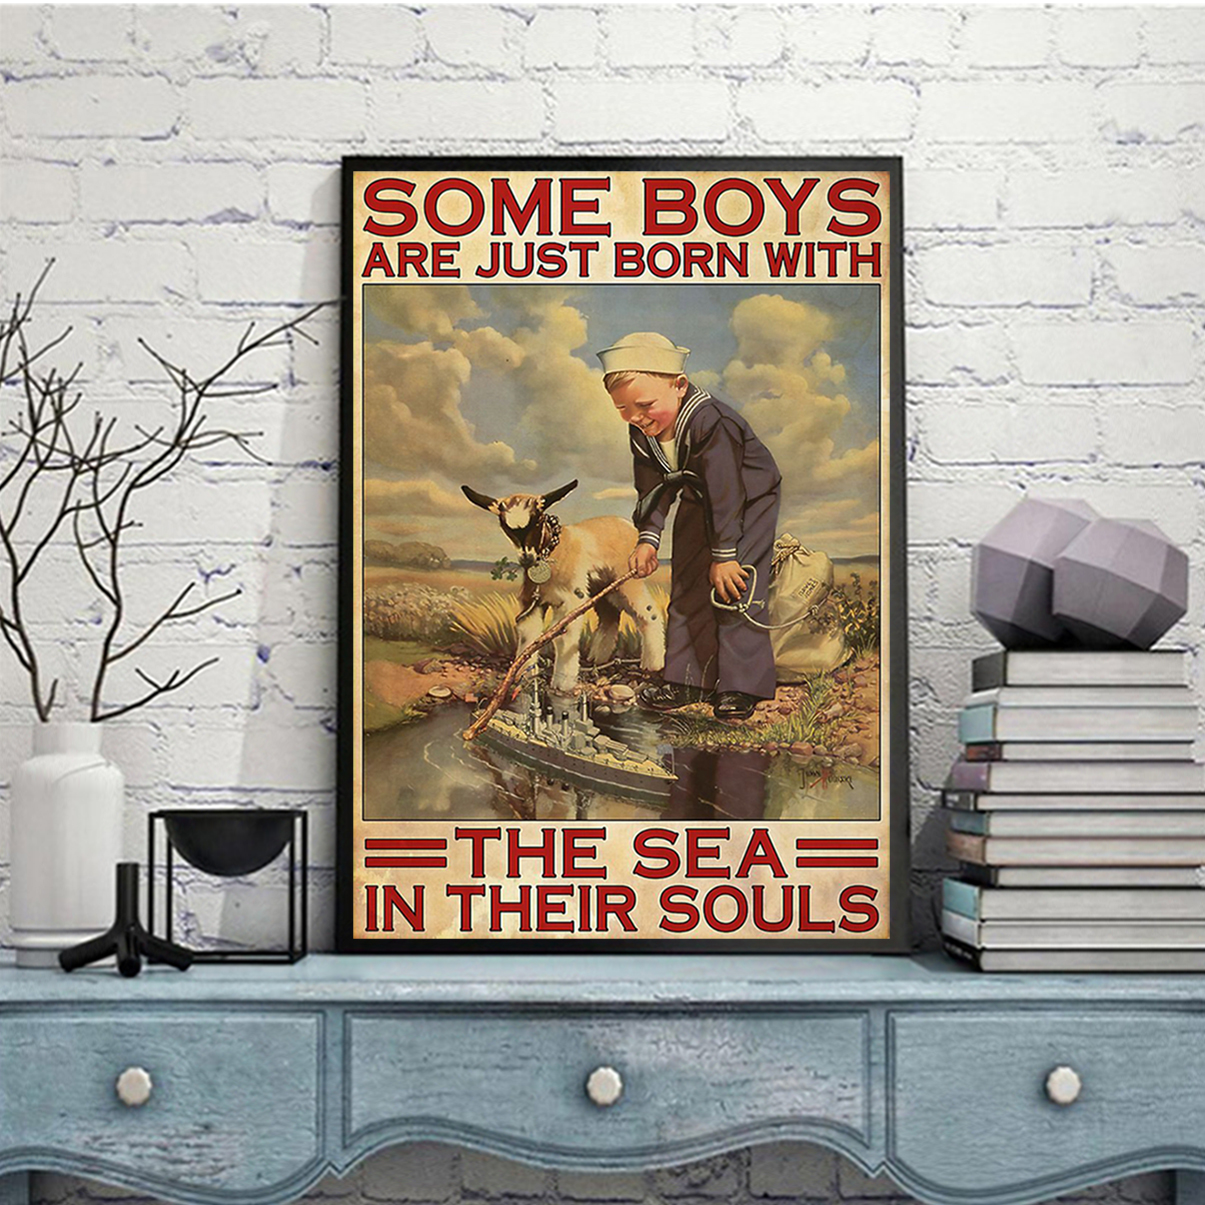 Some boys are just born with the sea in their souls poster A2